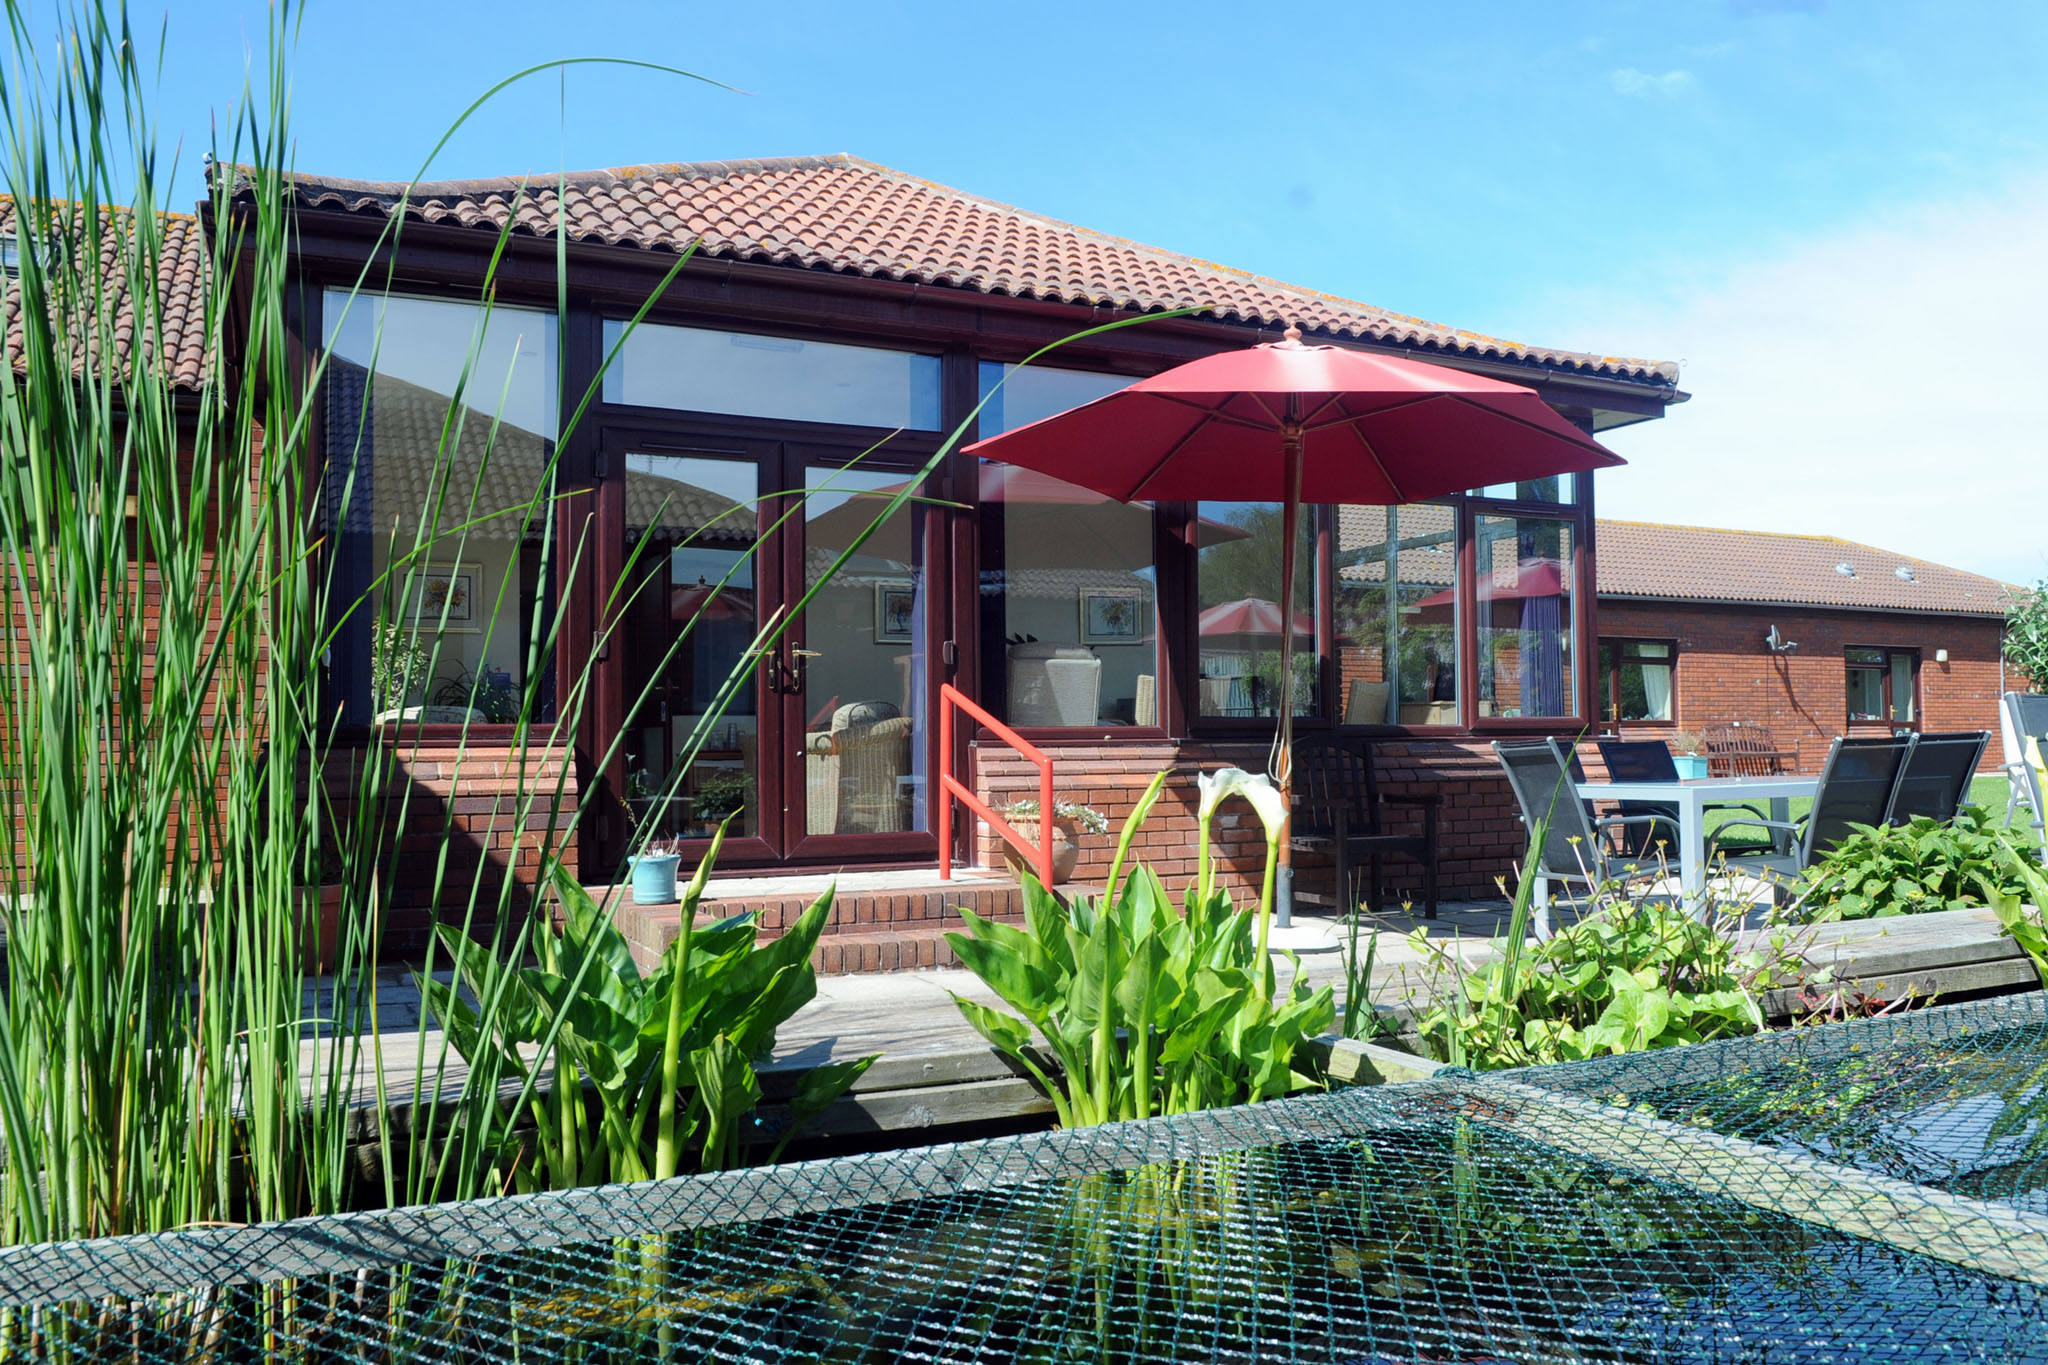 Manorfield Residential Home Gardens